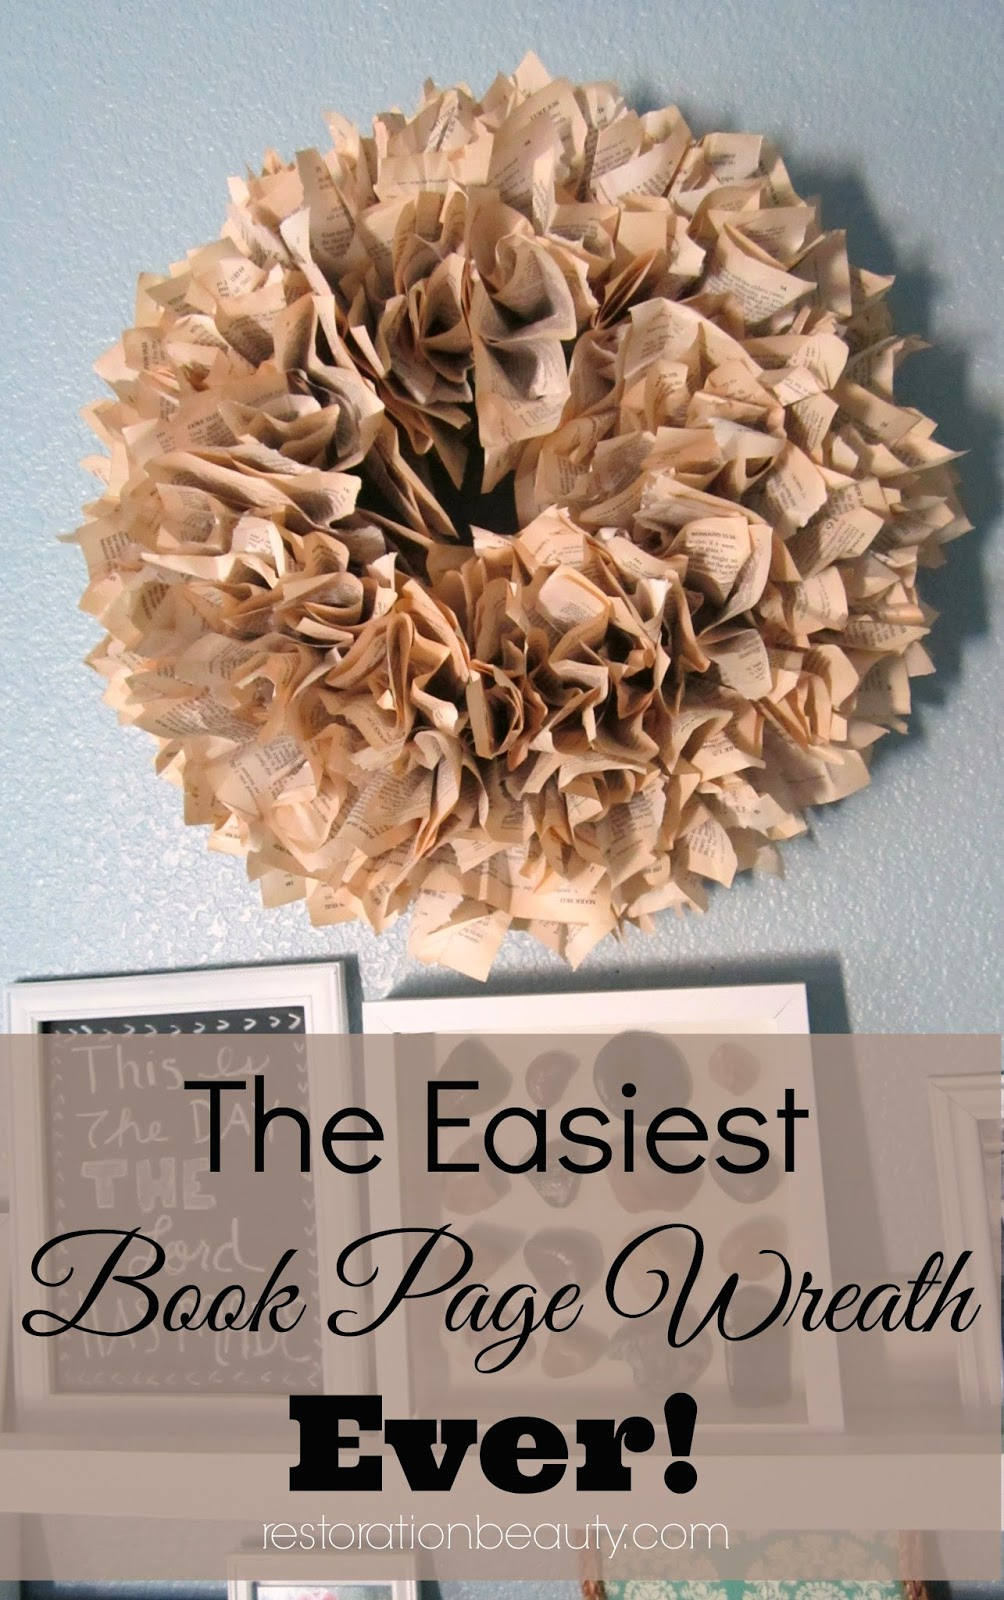 book page crafts, diy book page wreath